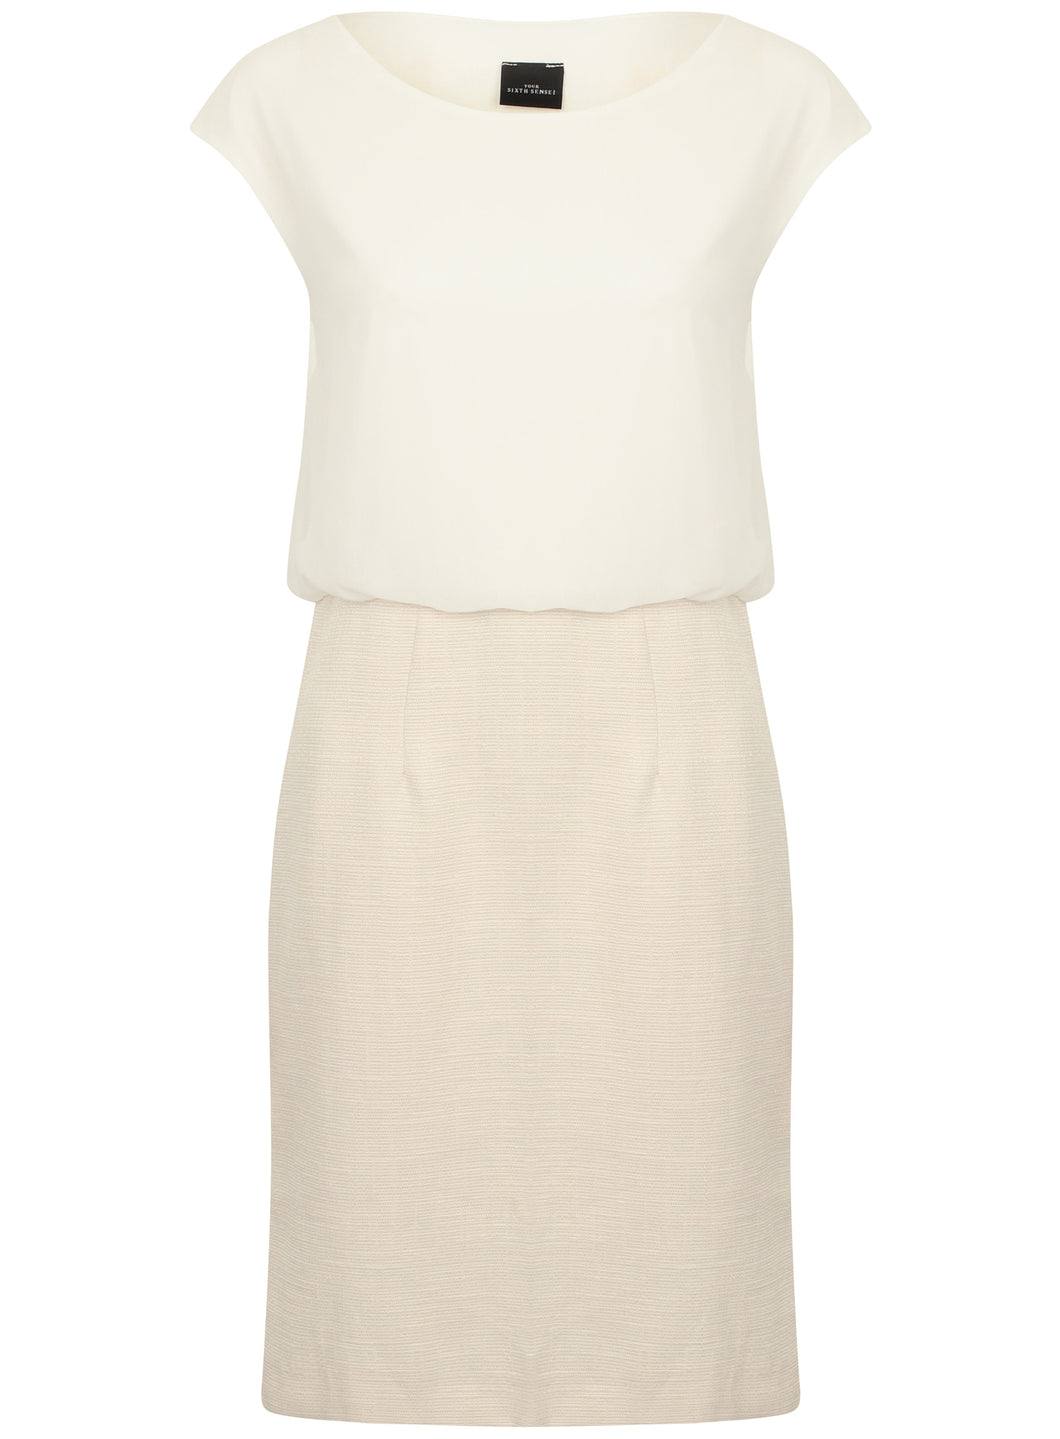 Ladies Panel Cream Office Work Dress